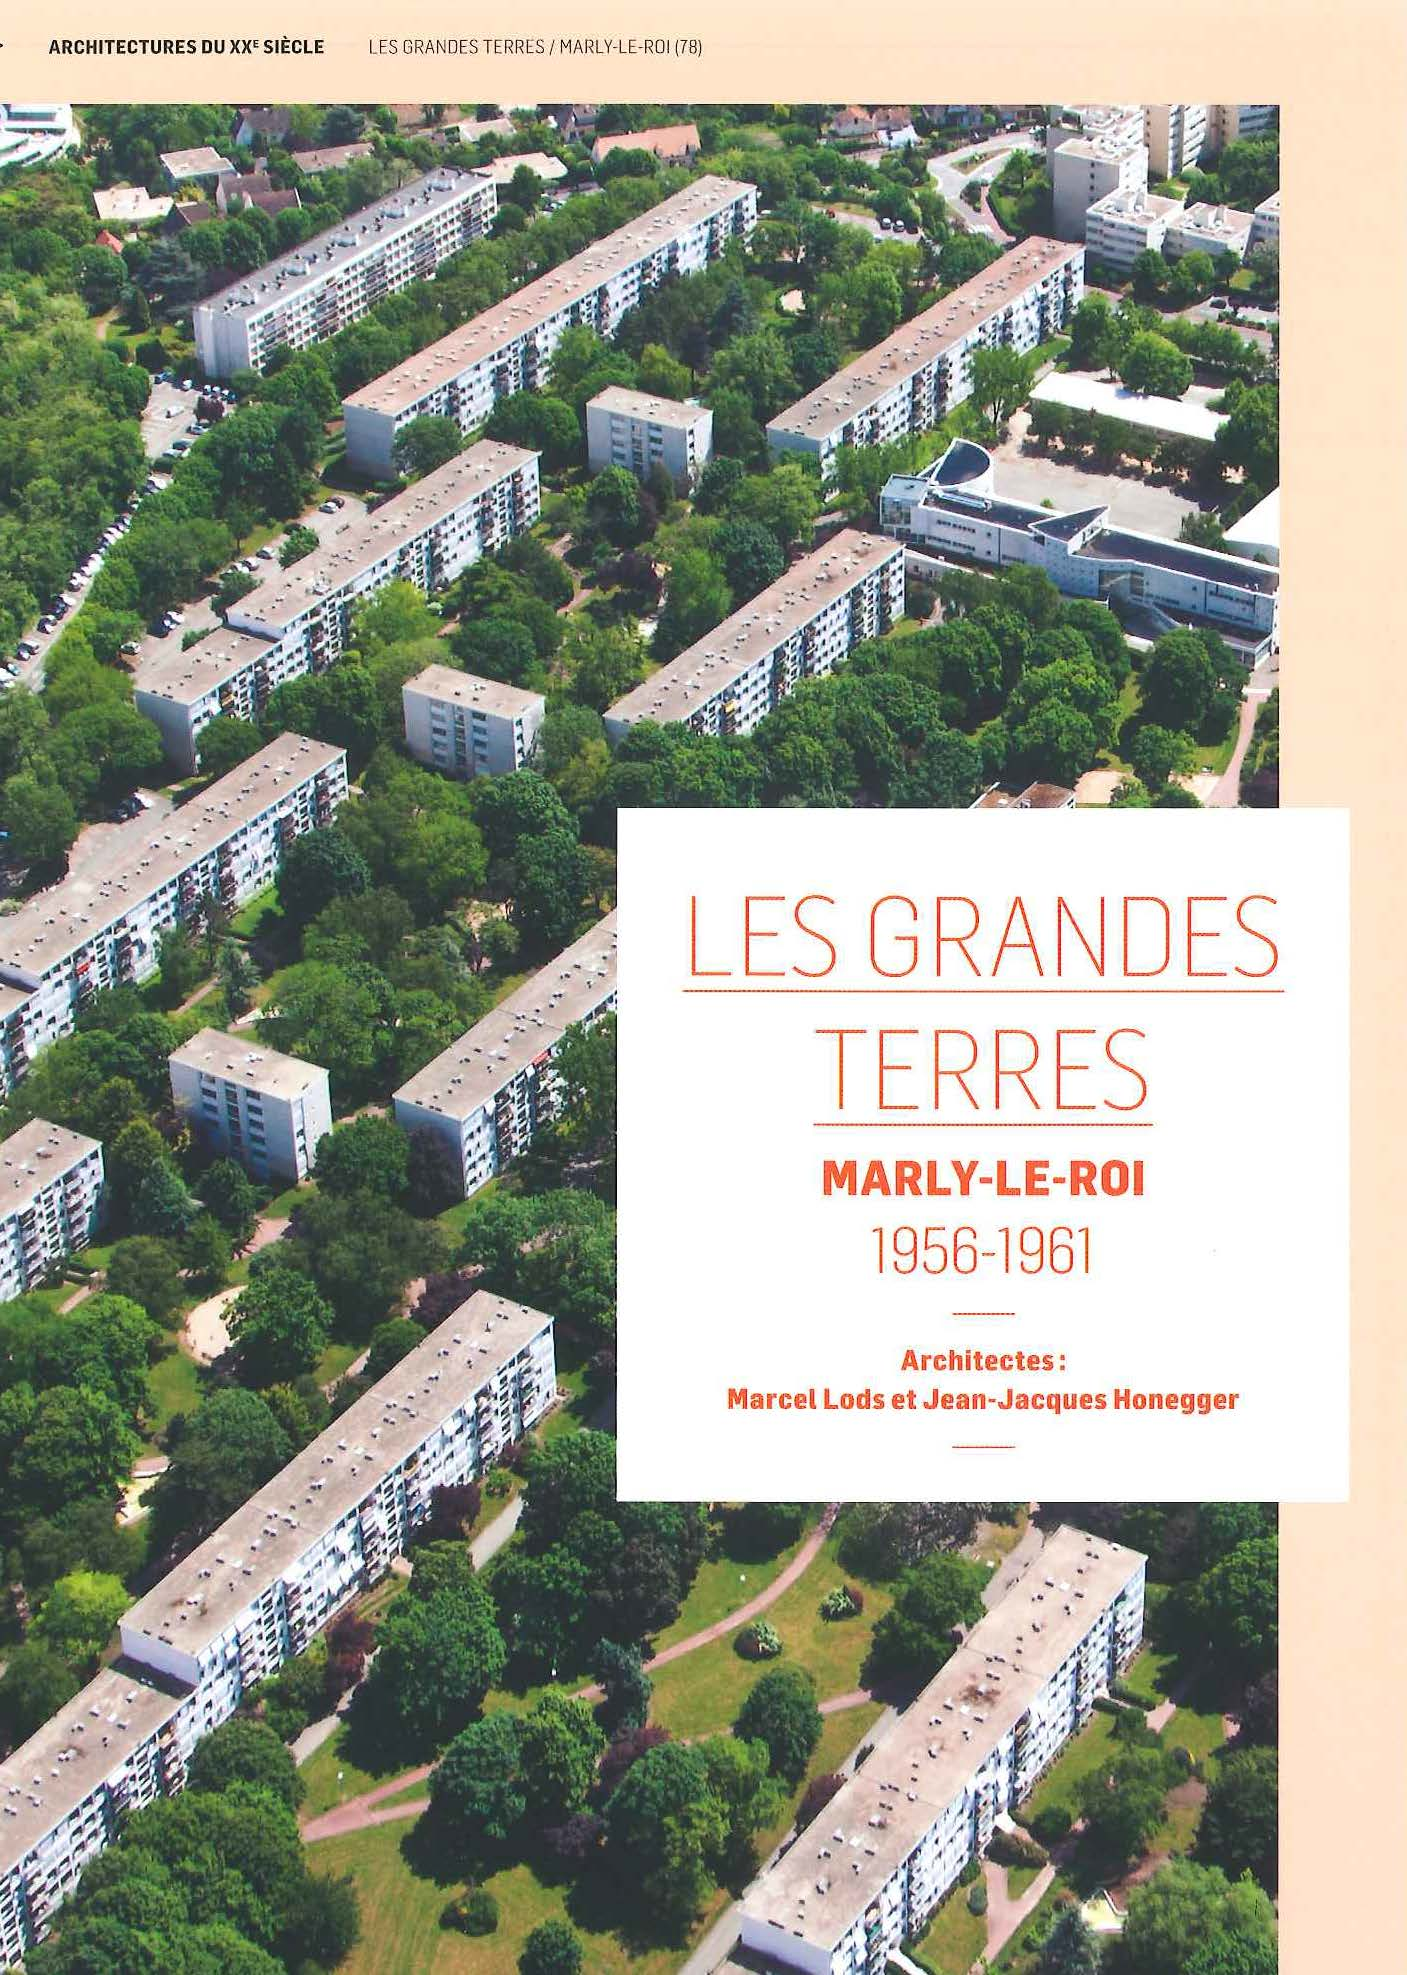 Les Grandes Terres - MARLY LE ROY 1956-1961